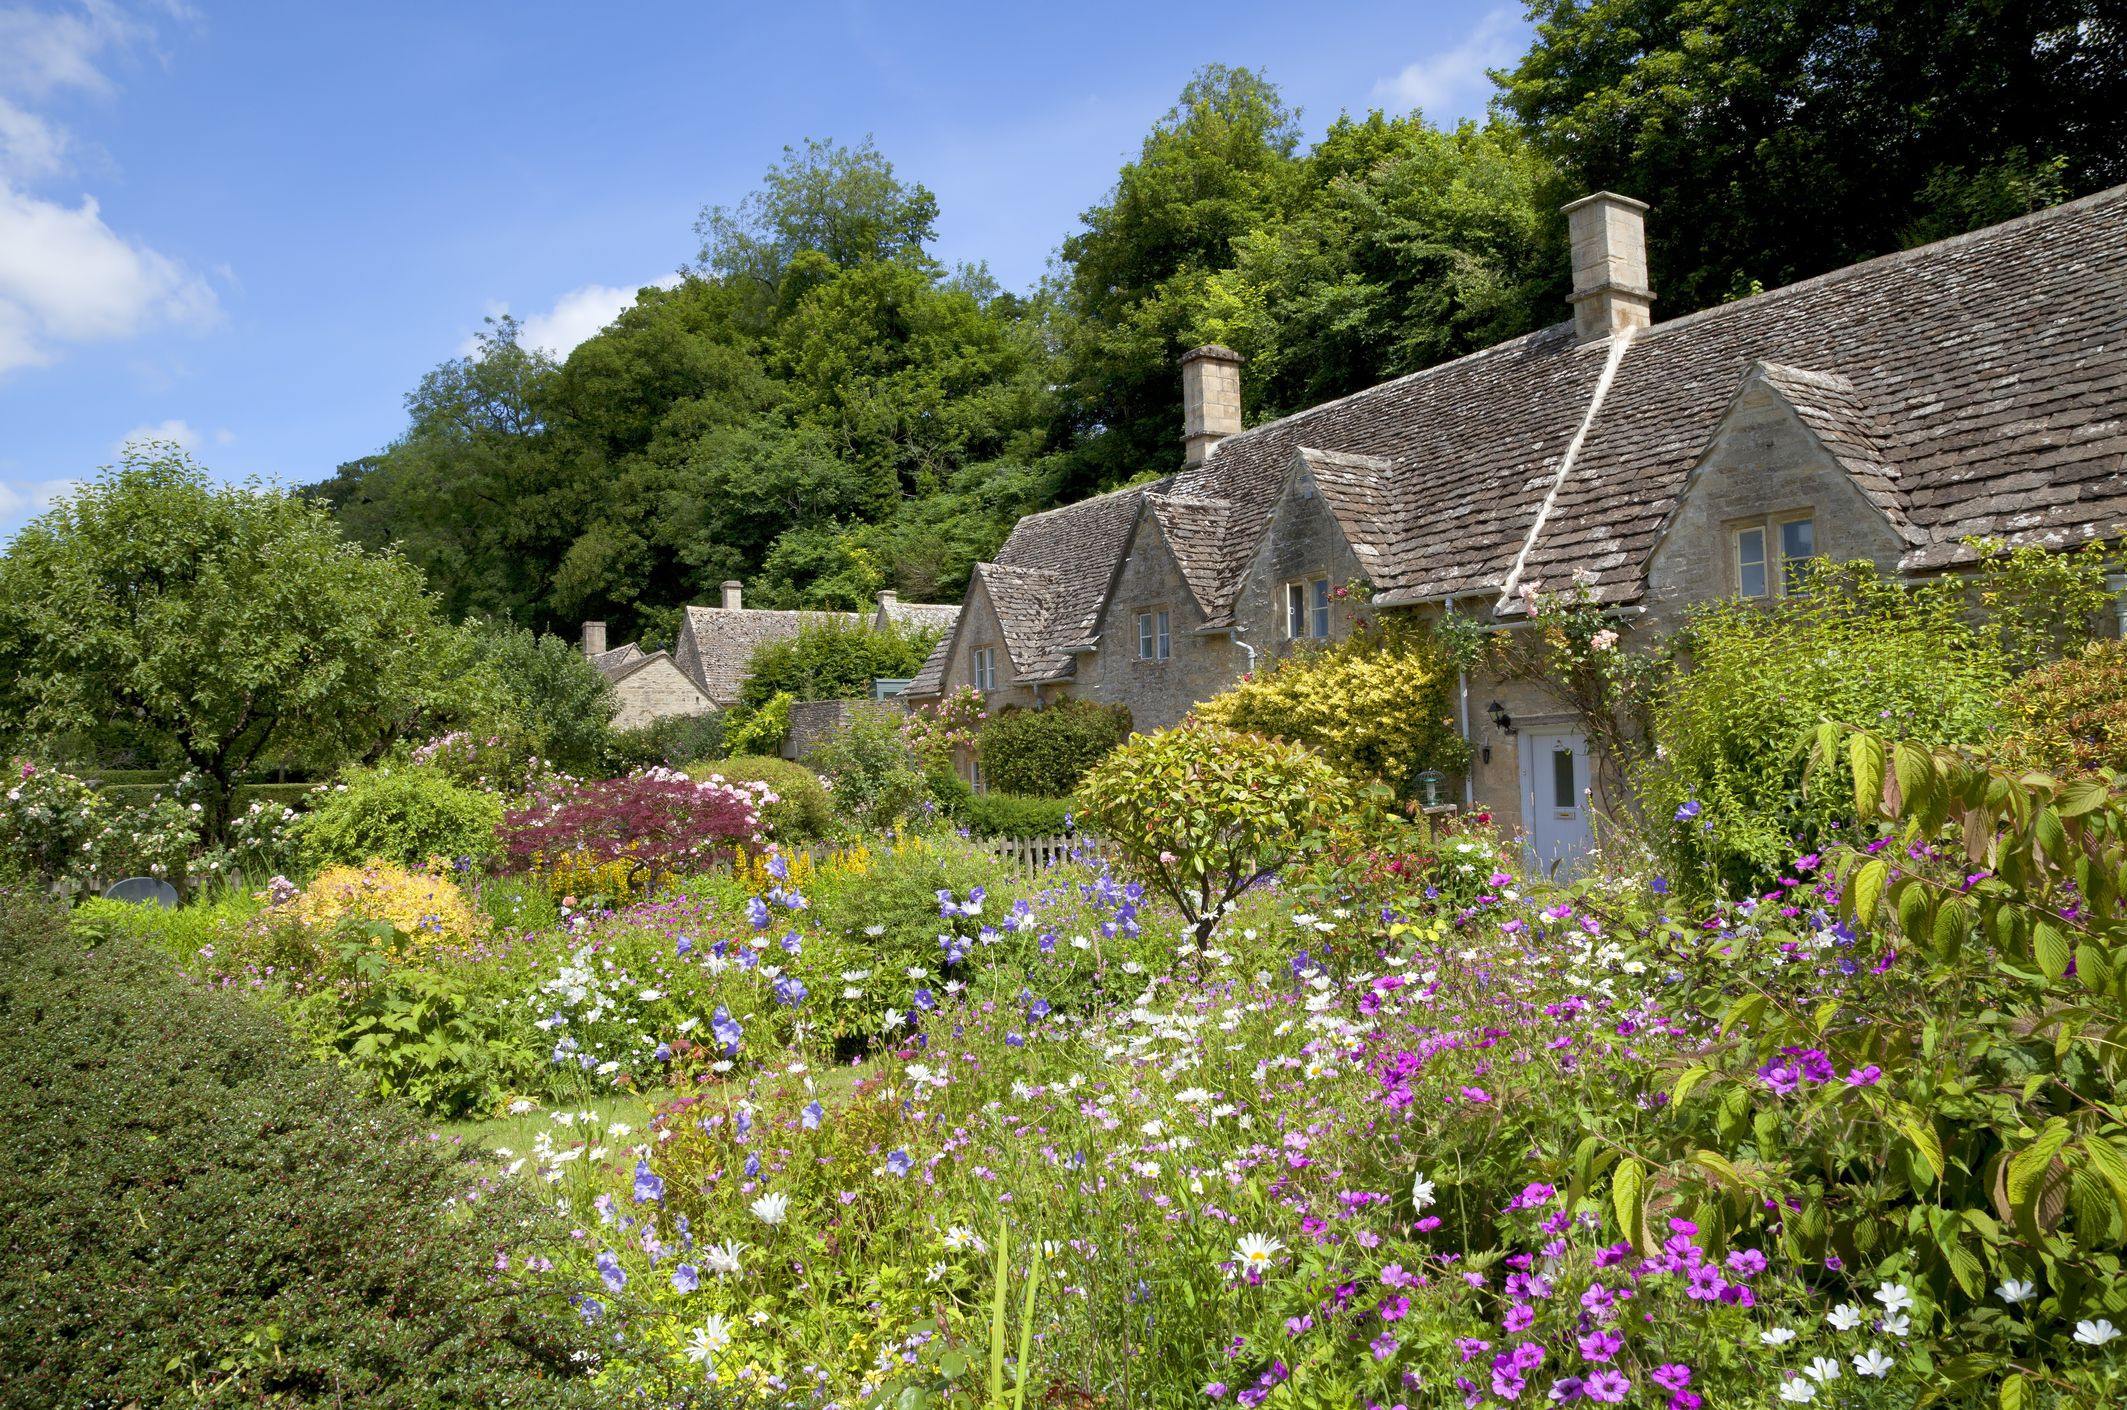 20 Things to Do in the Garden During Self-Isolation